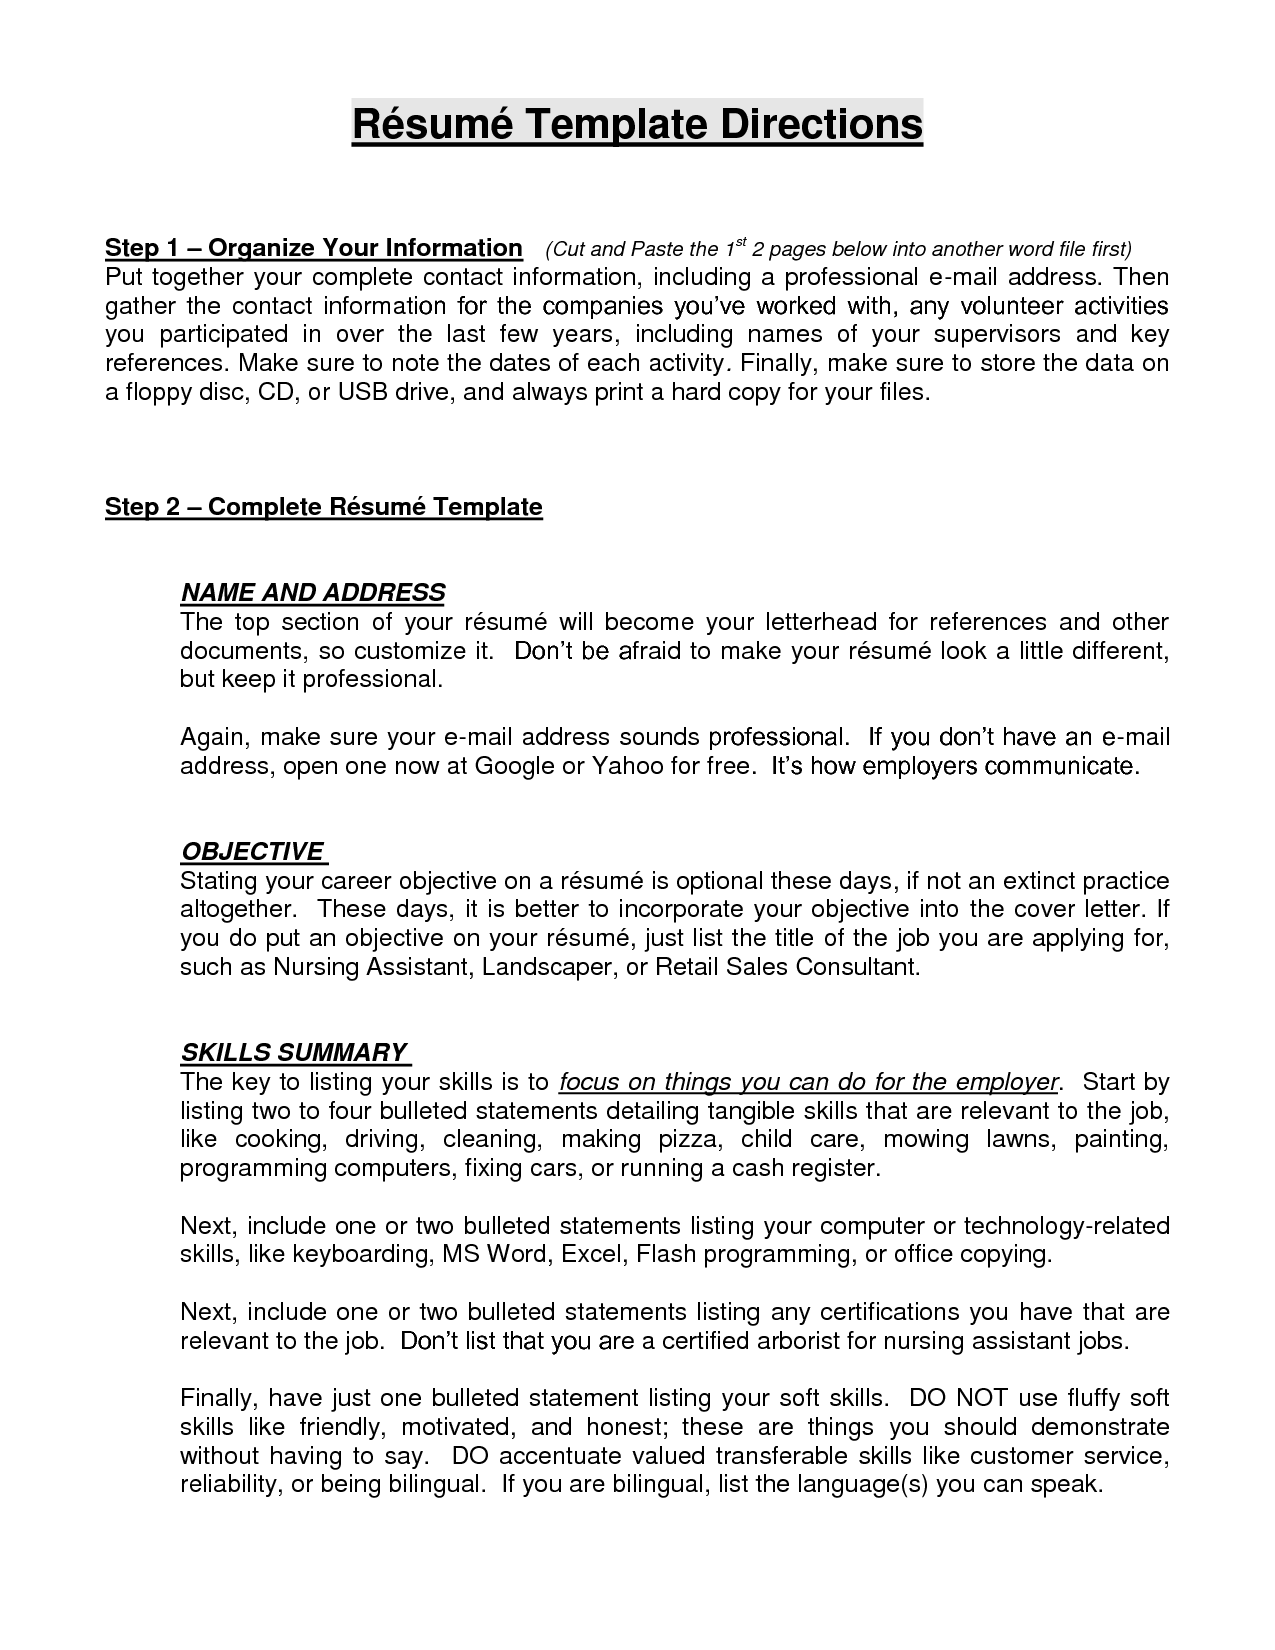 objective and skills resume objective statement great resume objective statements examples - Career Objective Statements For Resume